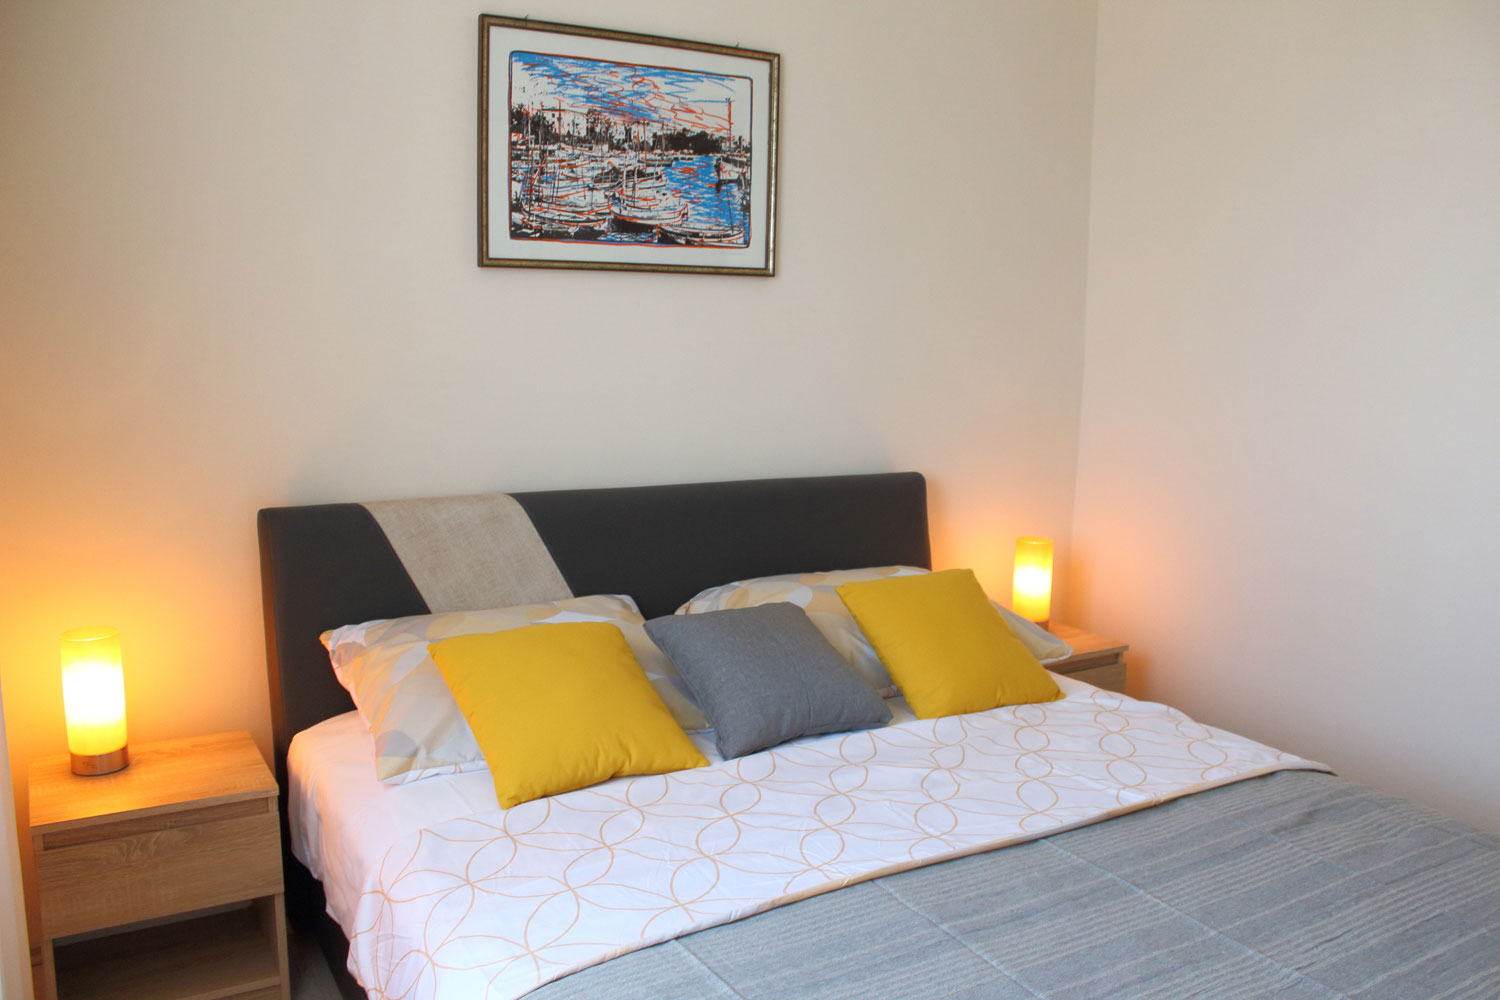 Apartments Basan Lovran-Opatija, apartment 4+1 bedroom